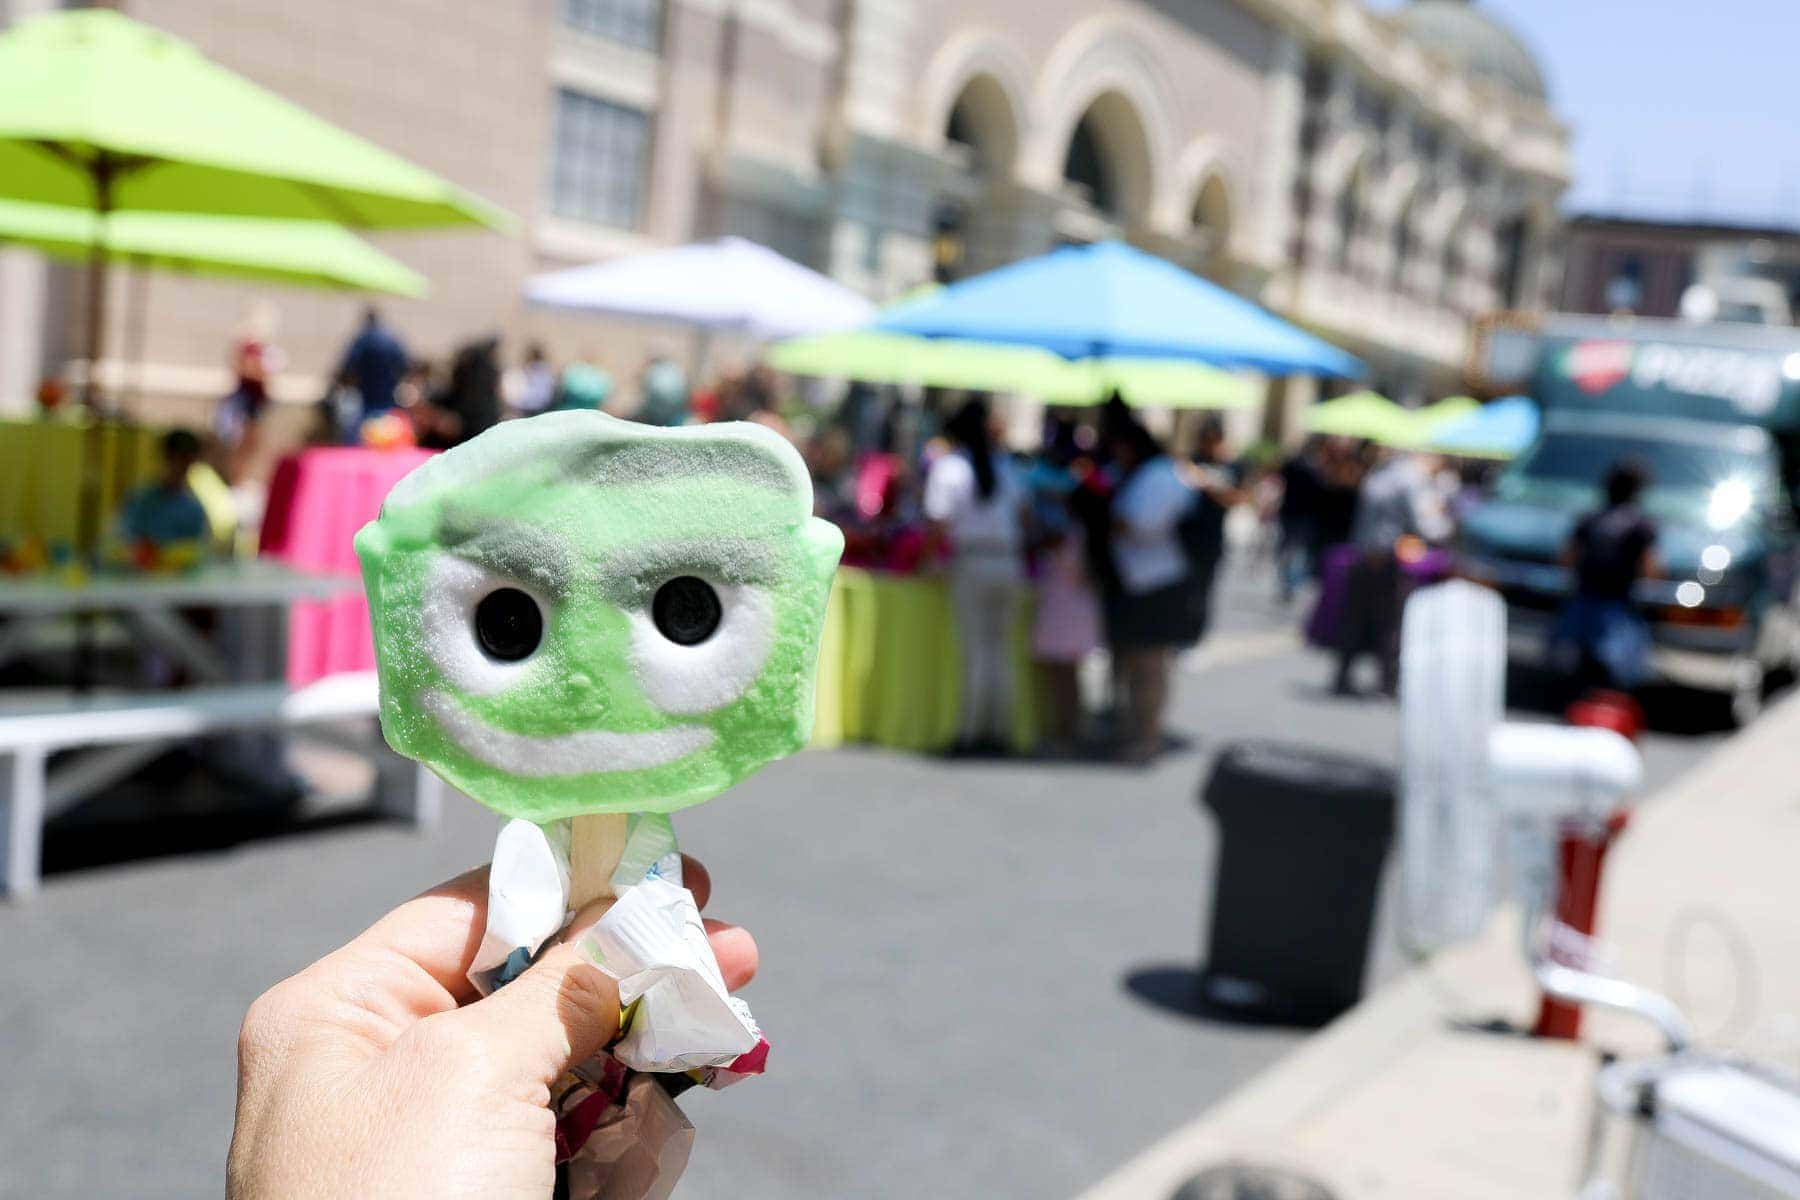 Unique Green and White with a Face Ice Pop #hollywood #warnerbrothers #teentitansgotothemovies #citygirlgonemom